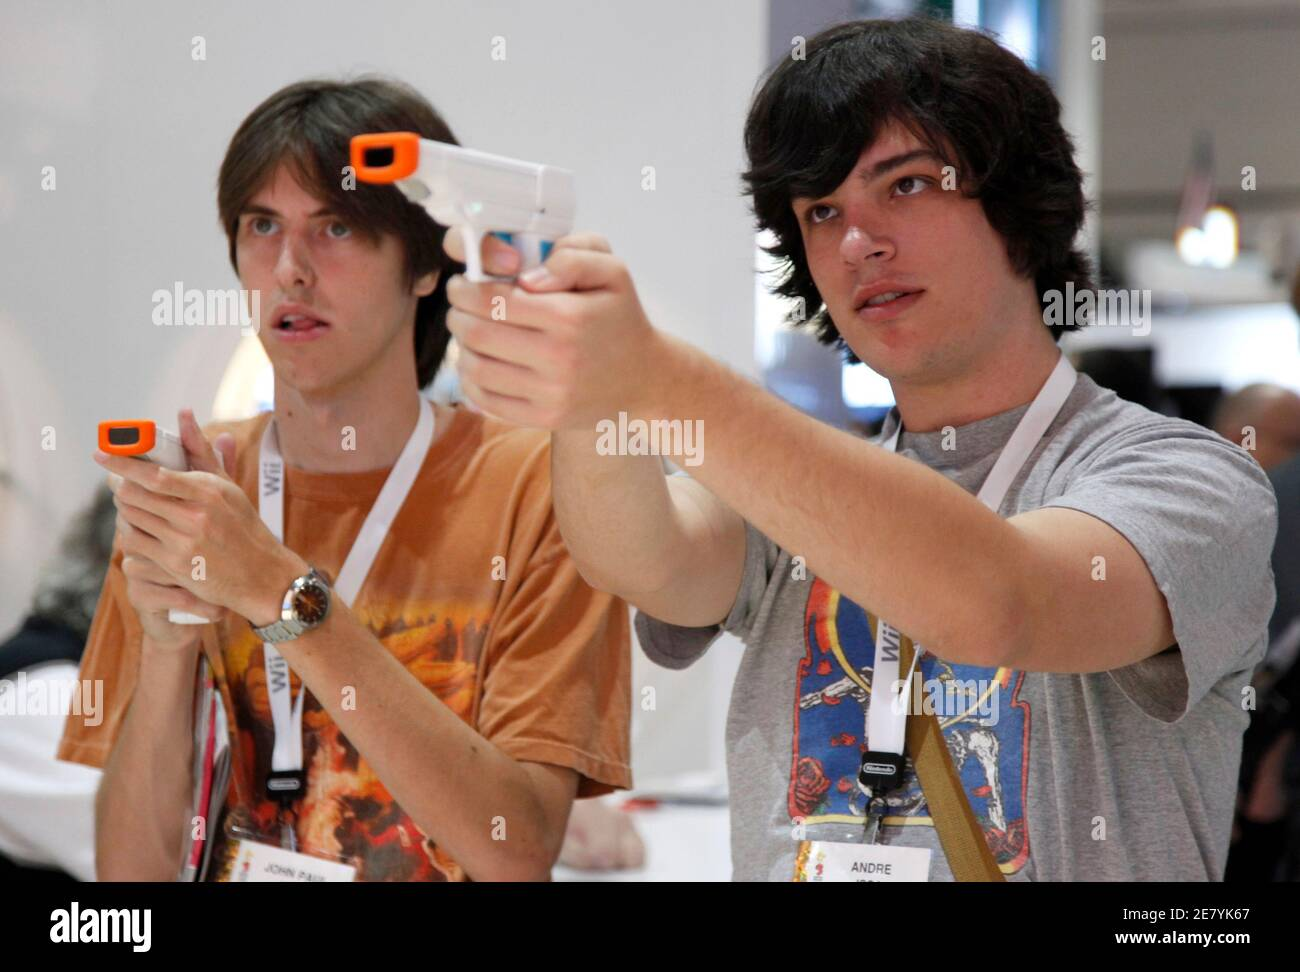 Visitors John Paul Issa (L) and Ryan Crow (R) try out the new Nyko wand and pistol grip as they play the Nintendo Wii at the Nyko Technologies booth during the Electronic Entertainment Expo (E3) in Los Angeles June 3, 2009. The convention runs June 2-4. REUTERS/Danny Moloshok (UNITED STATES SCI TECH BUSINESS) Foto Stock